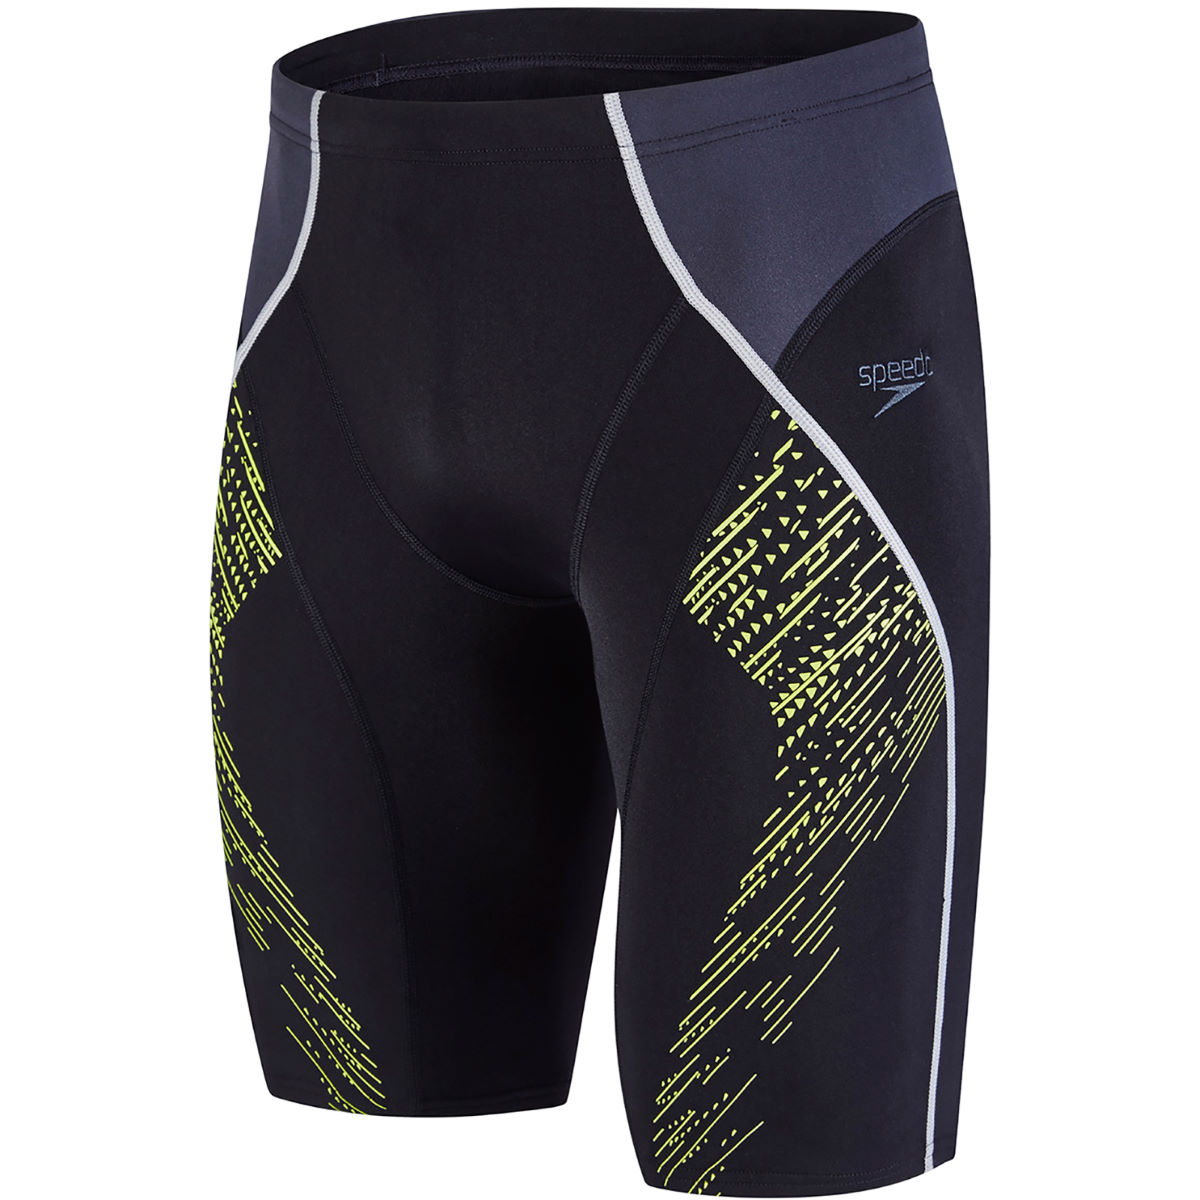 Jammer Speedo Fit Panel - 40 Black/Oxid Grey/Lime